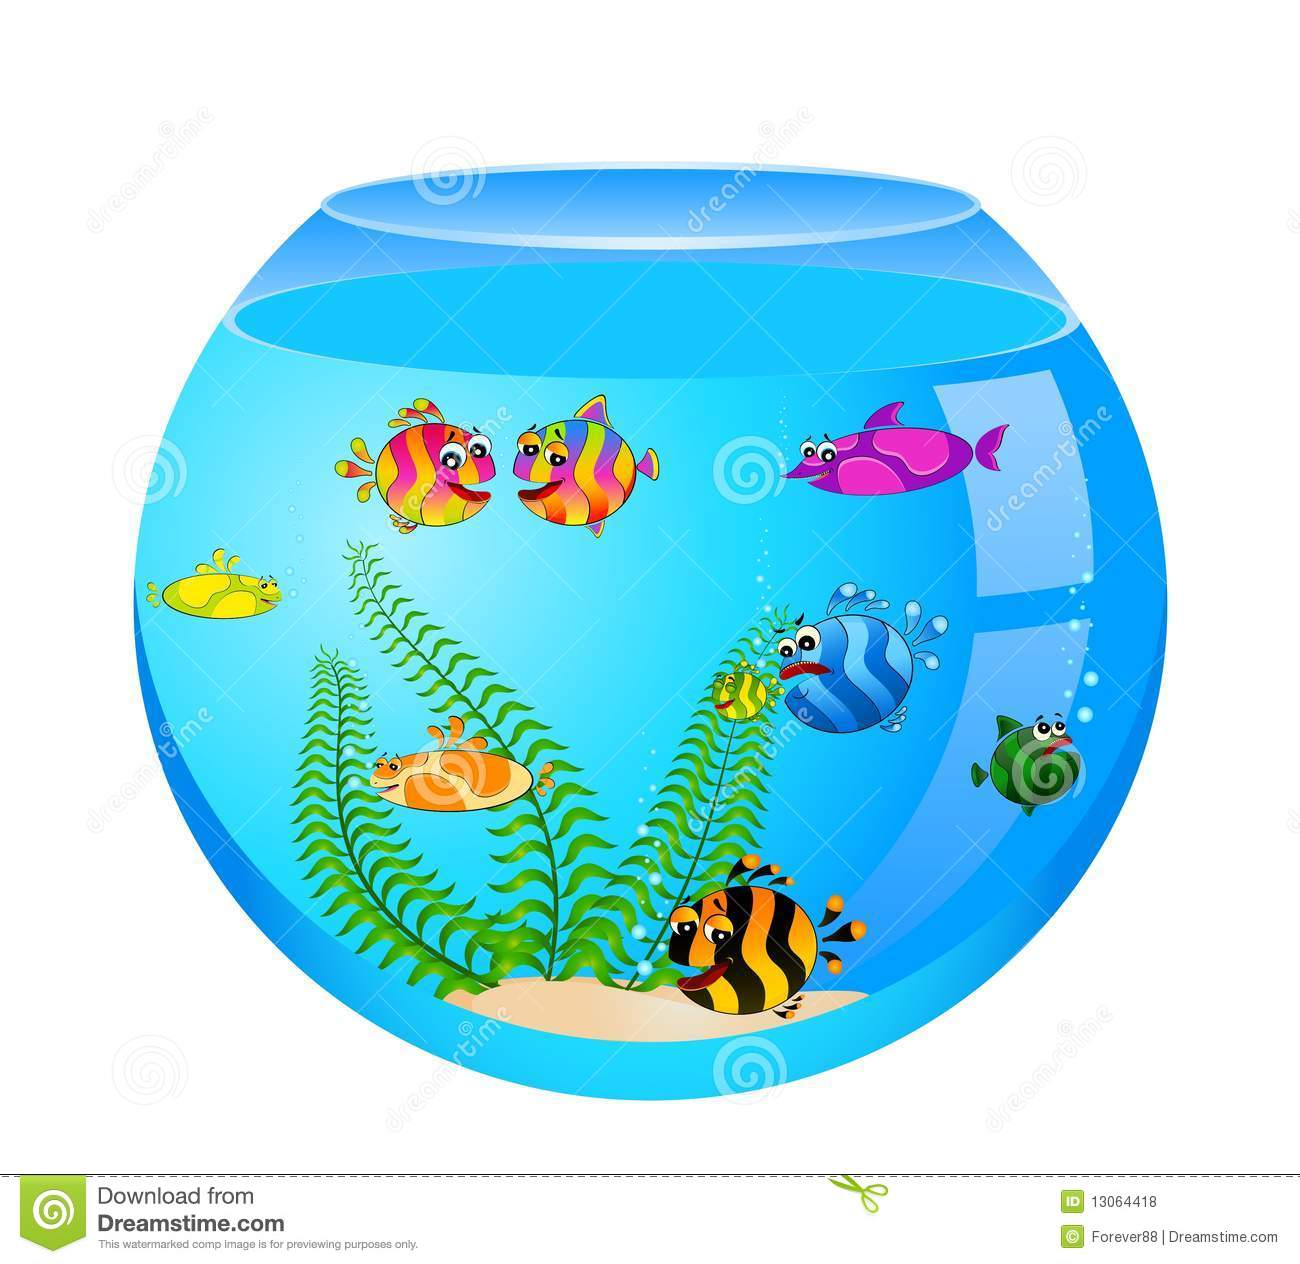 Tropical Fish In Aquarium Royalty Free Stock Photos - Image: 13064418